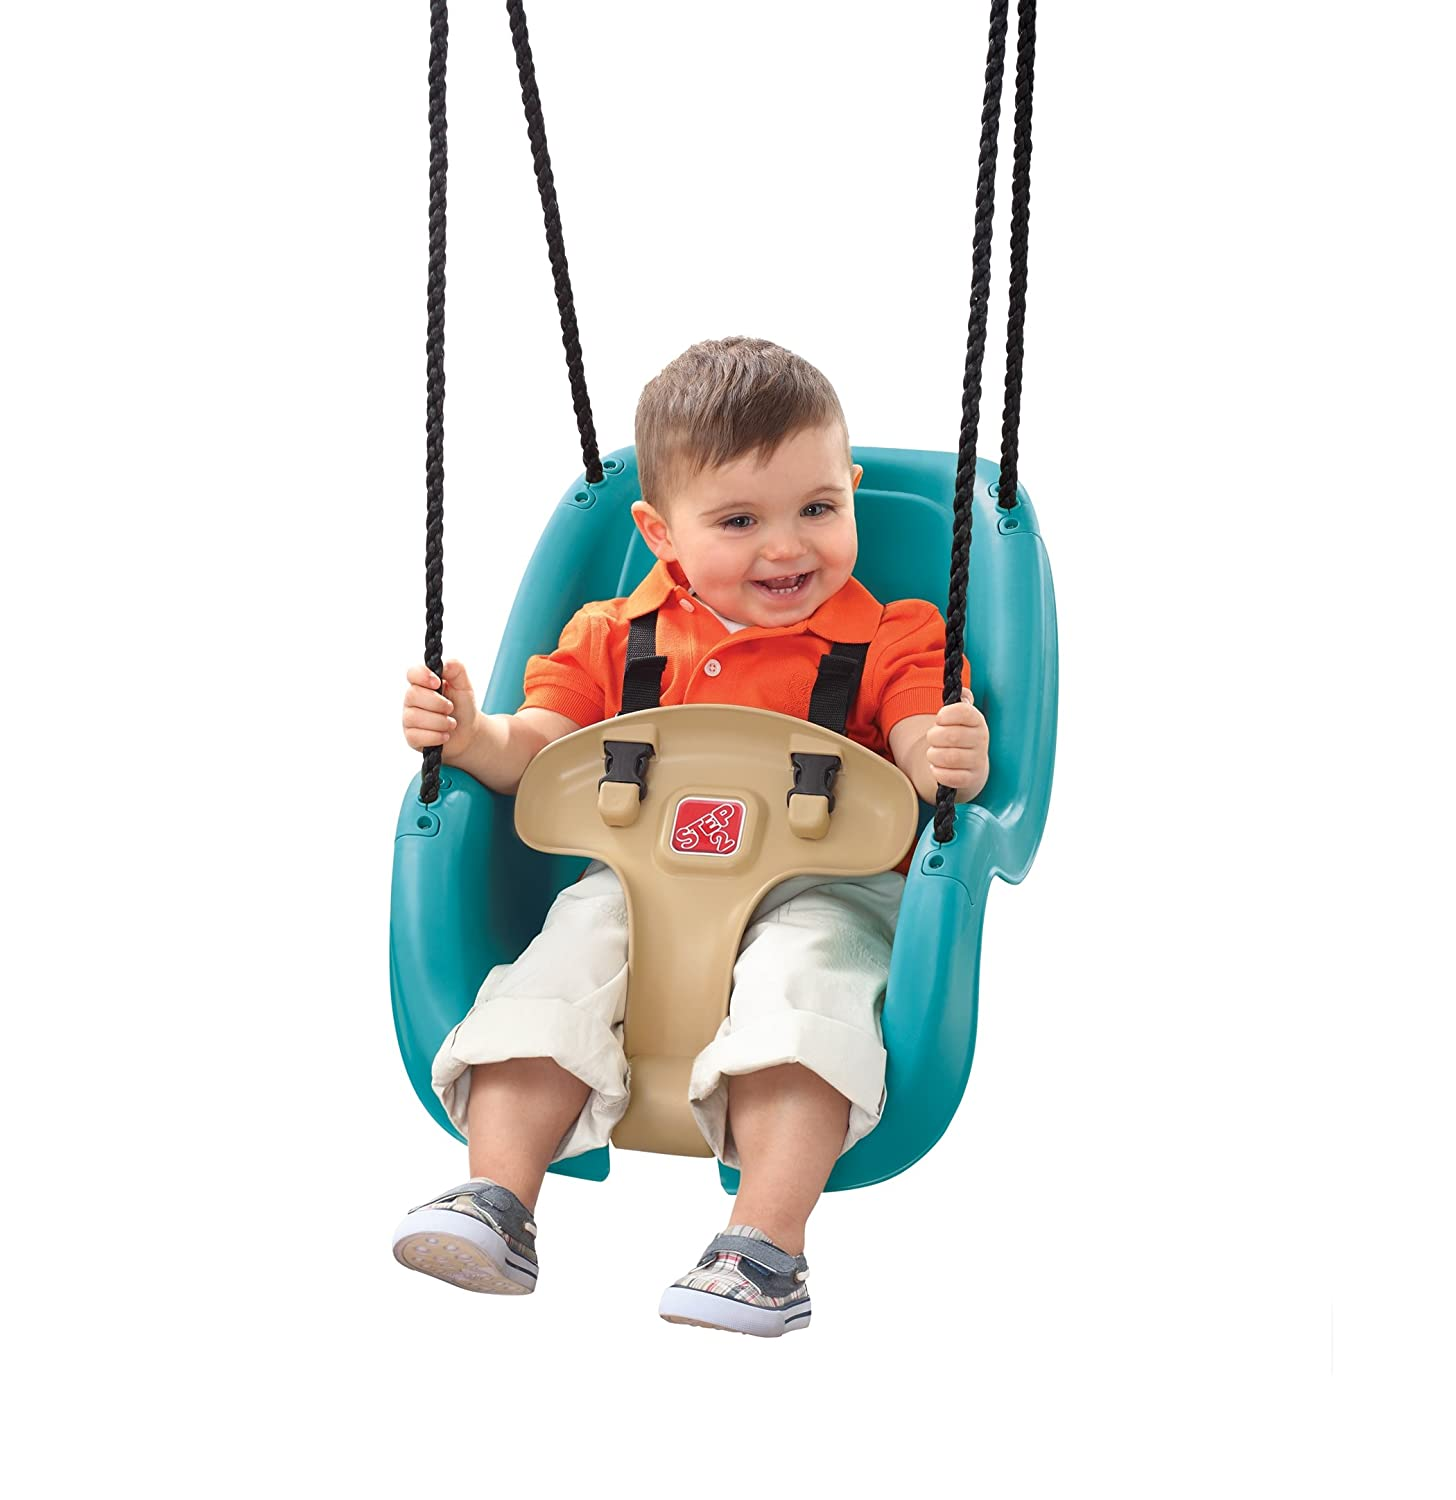 3. Step2 Infant To Toddler Swing Seat, Turquoise